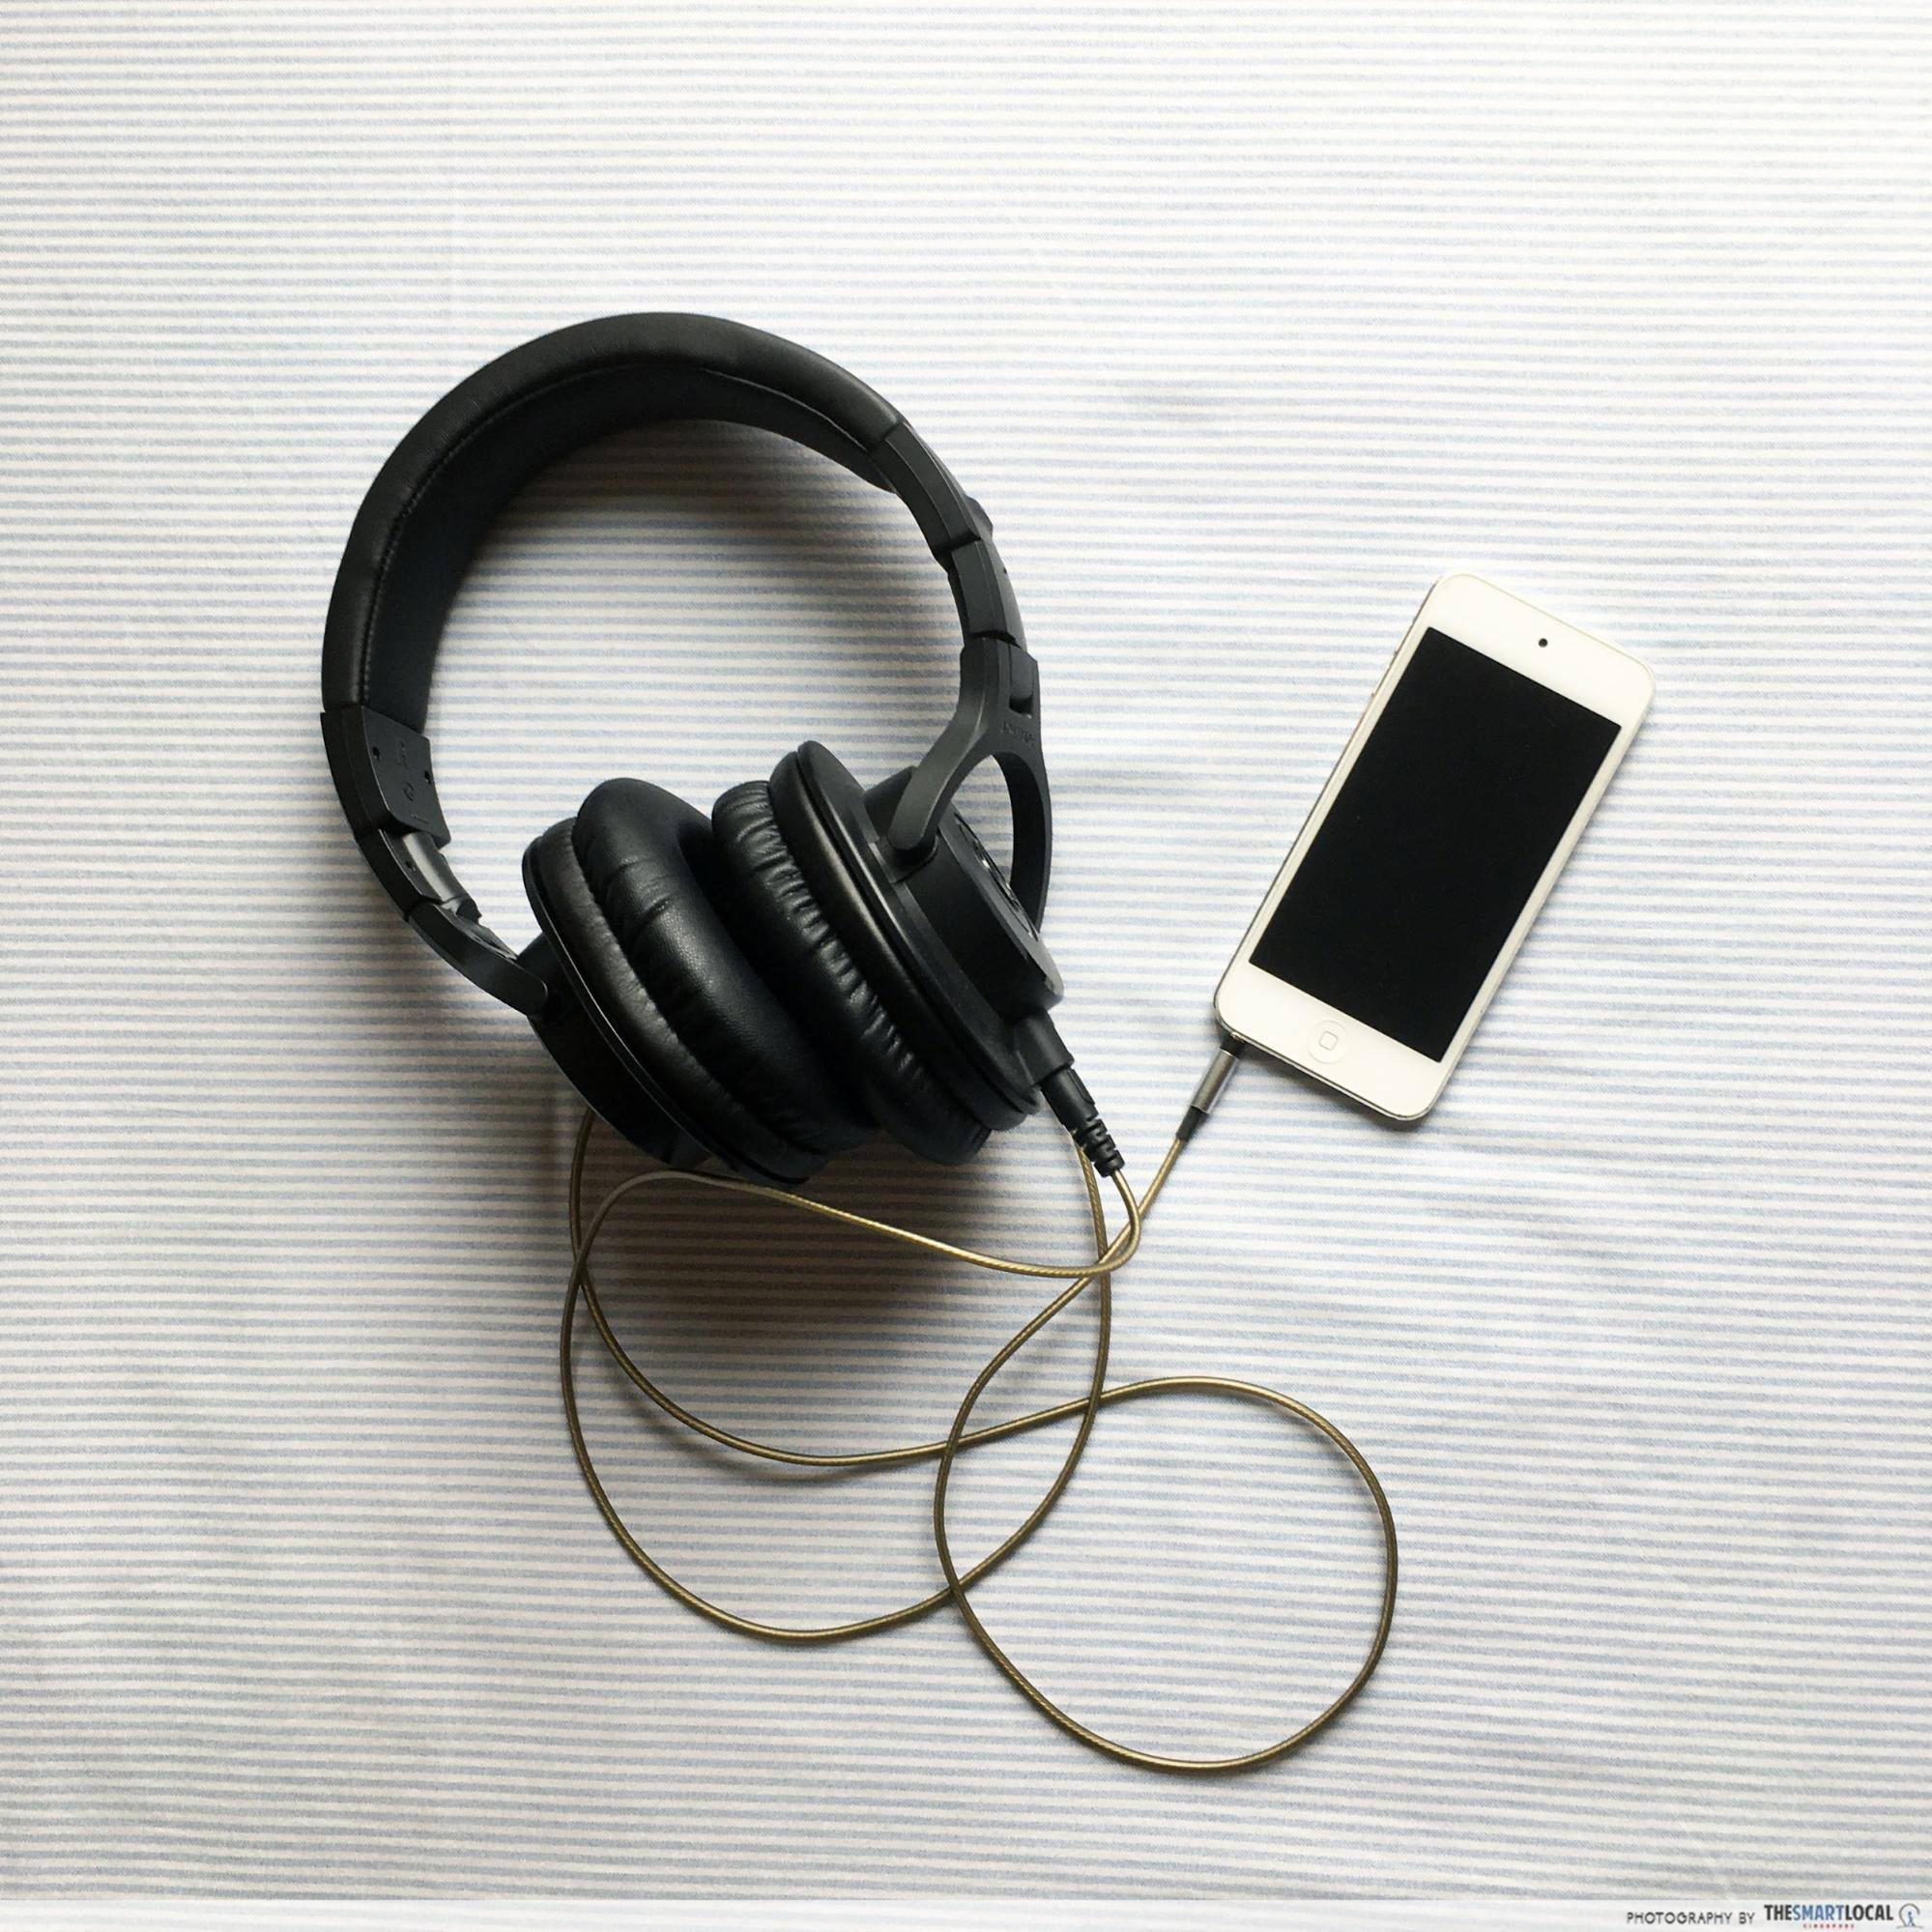 listen to music and podcasts - self-quarantine